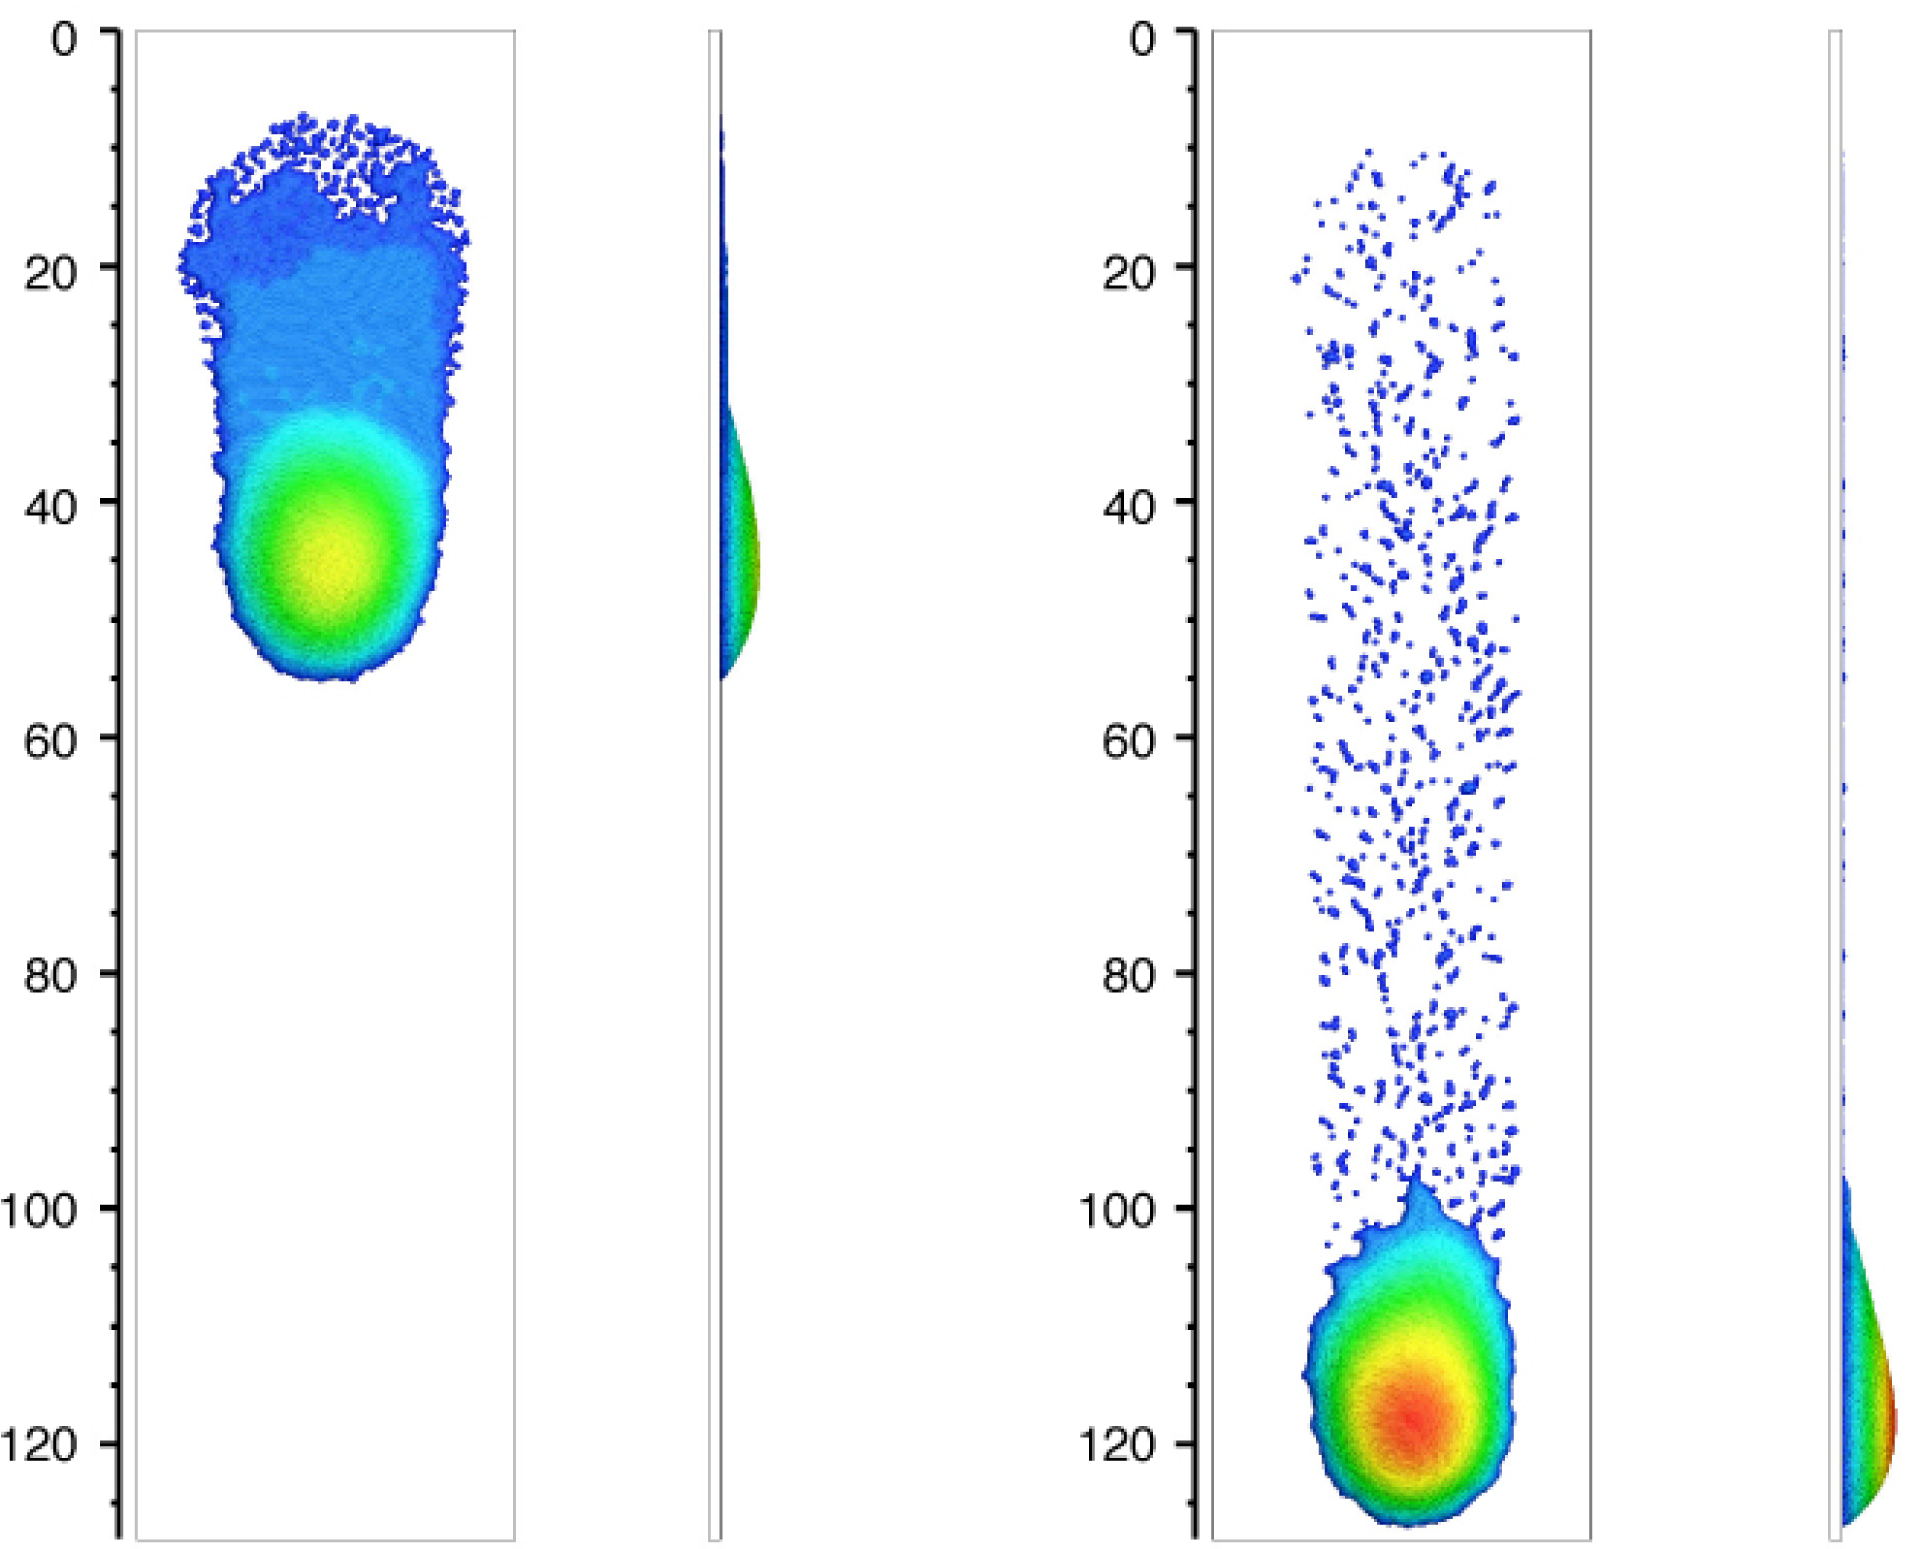 SPH simulations of droplet flow dynamics and trail formations